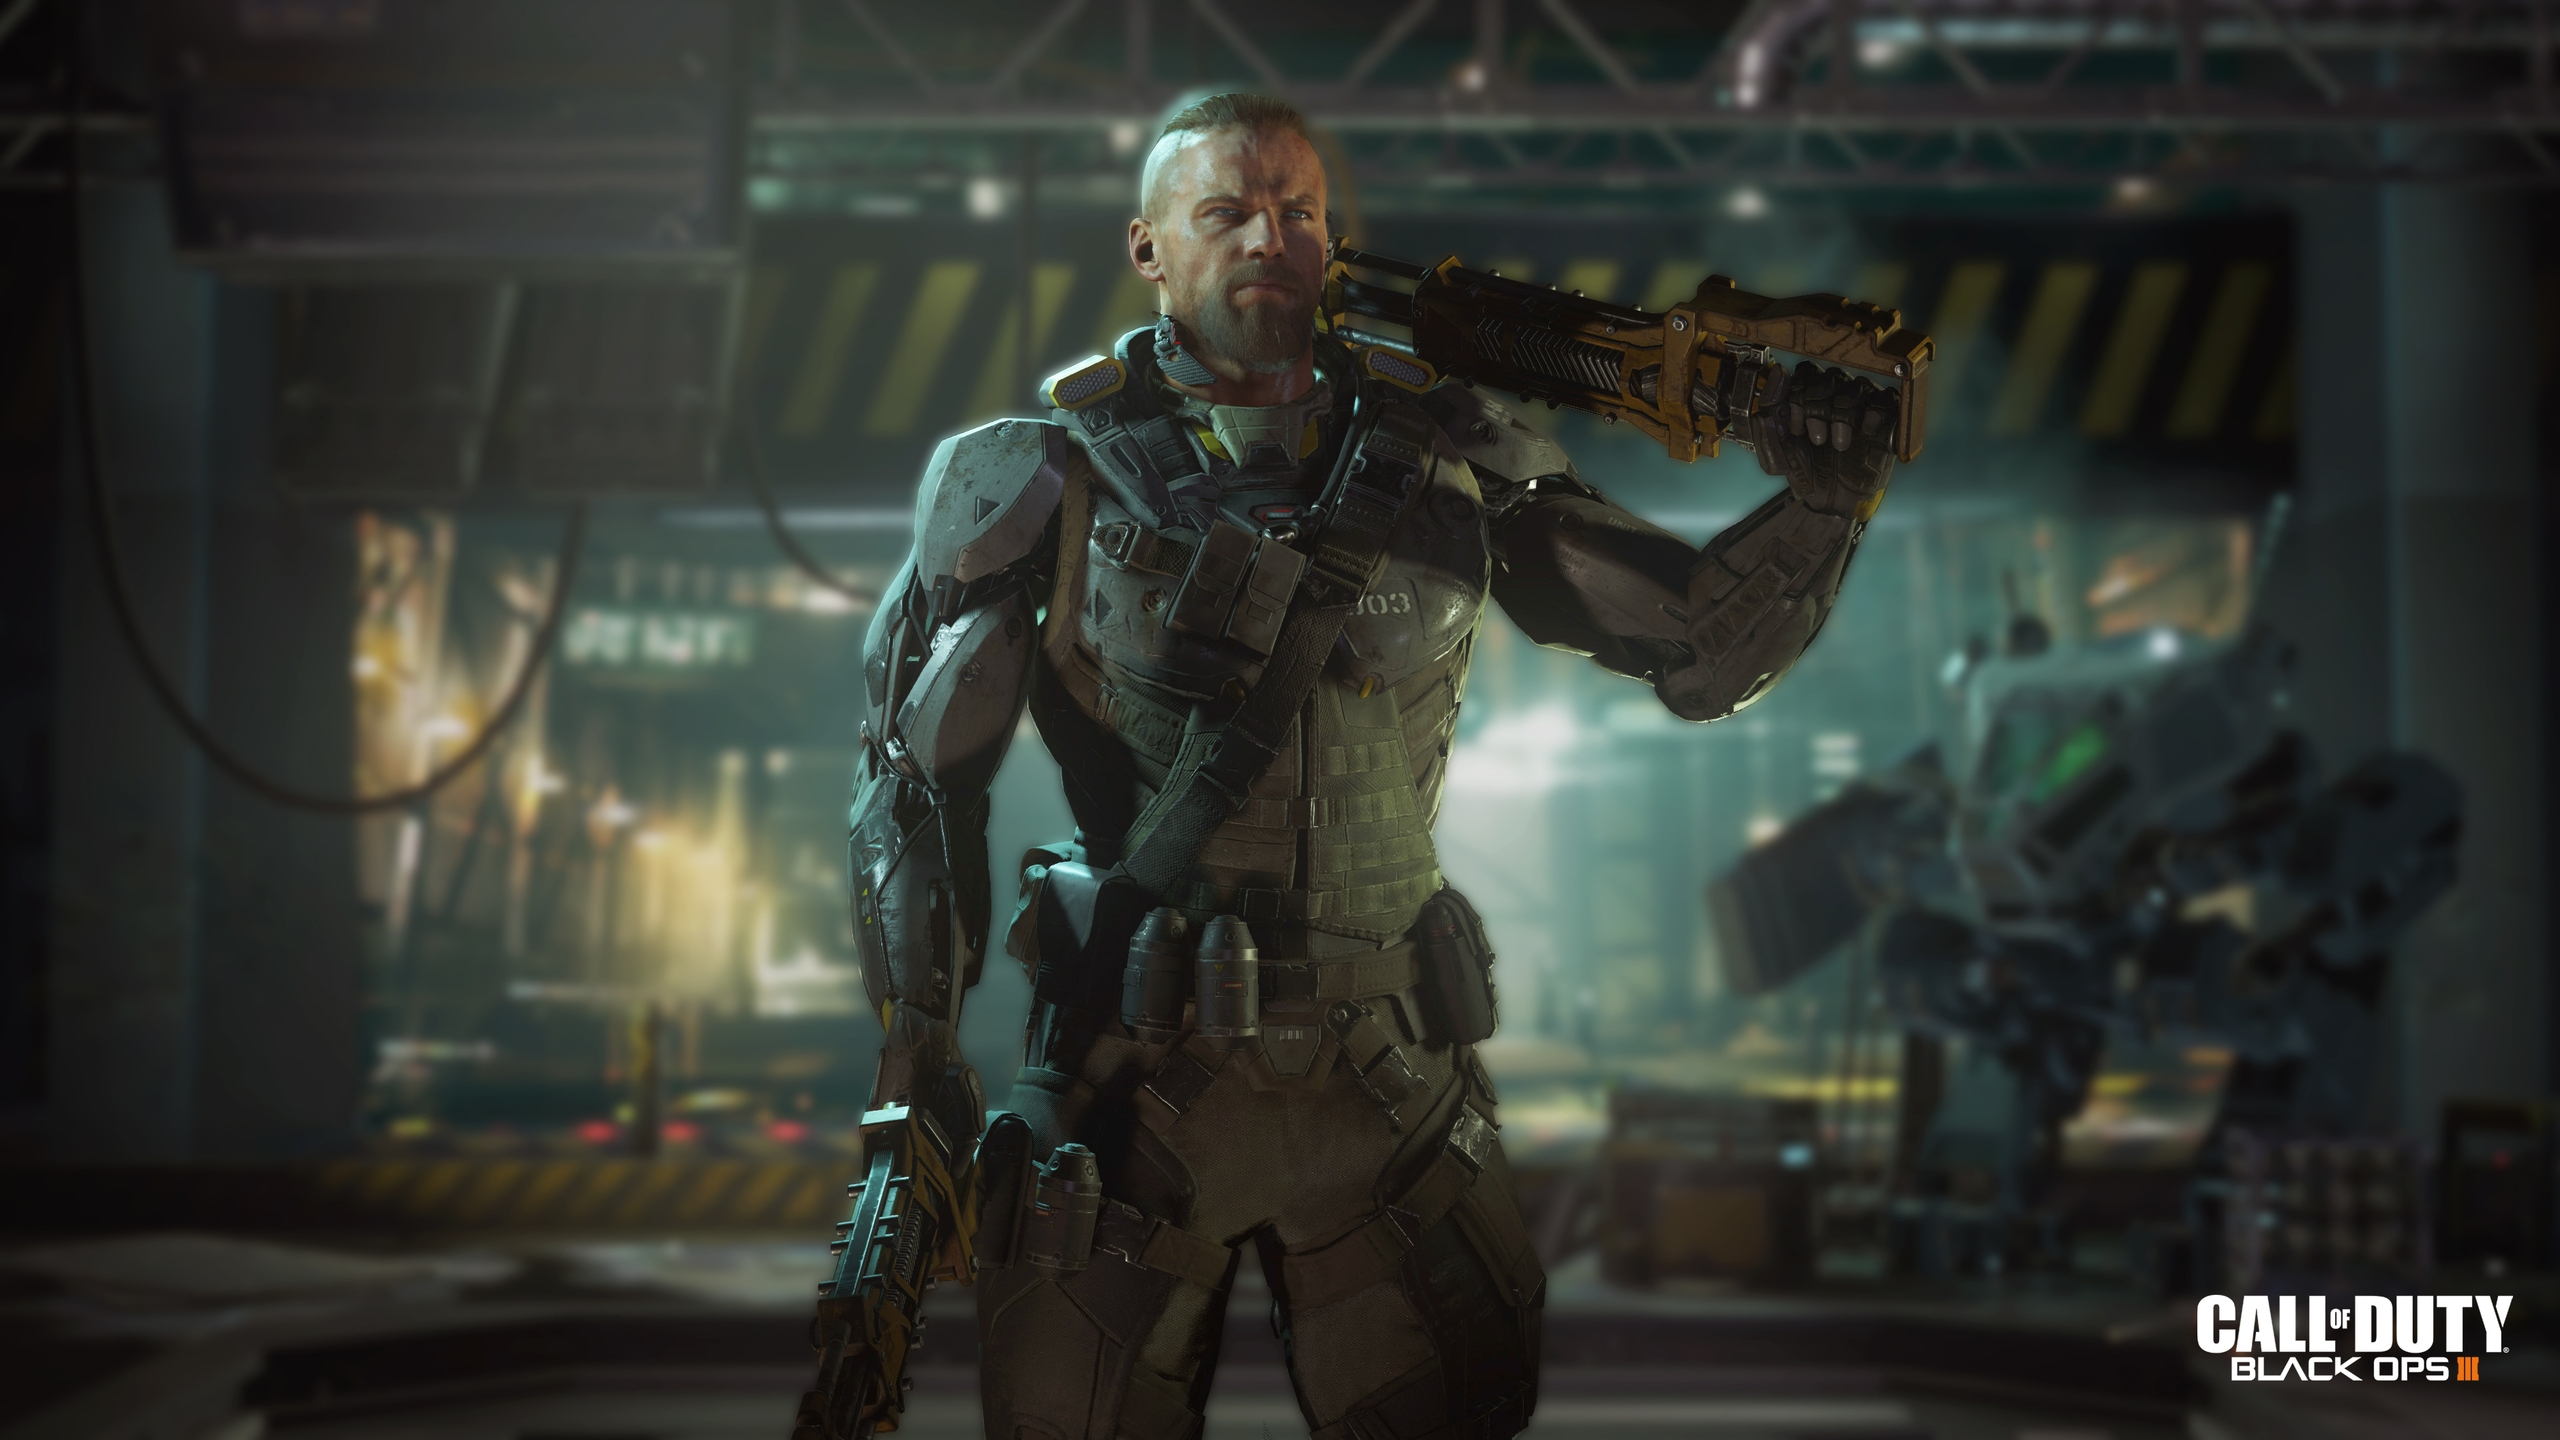 Call Of Duty Black Ops 3 Specialist Ruin 2560x1440 Hdtv Wallpaper